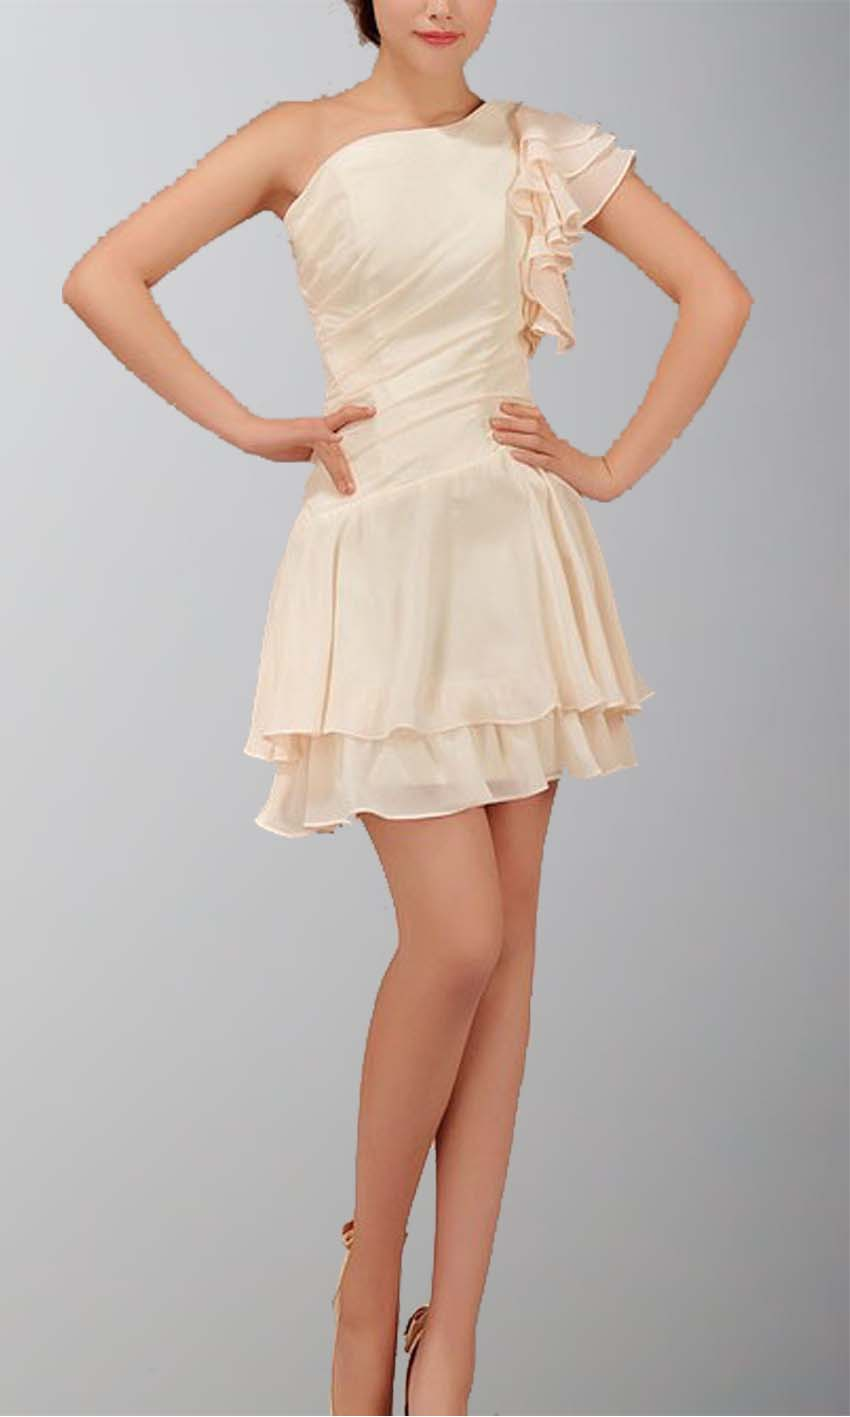 Chic Unique One Shoulder Layered Short Summer Dress KSP017 [KSP017] - £78.00 : Cheap Prom Dresses Uk, Bridesmaid Dresses, 2014 Prom & Evening Dresses, Look for cheap elegant prom dresses 2014, cocktail gowns, or dresses for special occasions? kissprom.co.uk offers various bridesmaid dresses, evening dress, free shipping to UK etc.